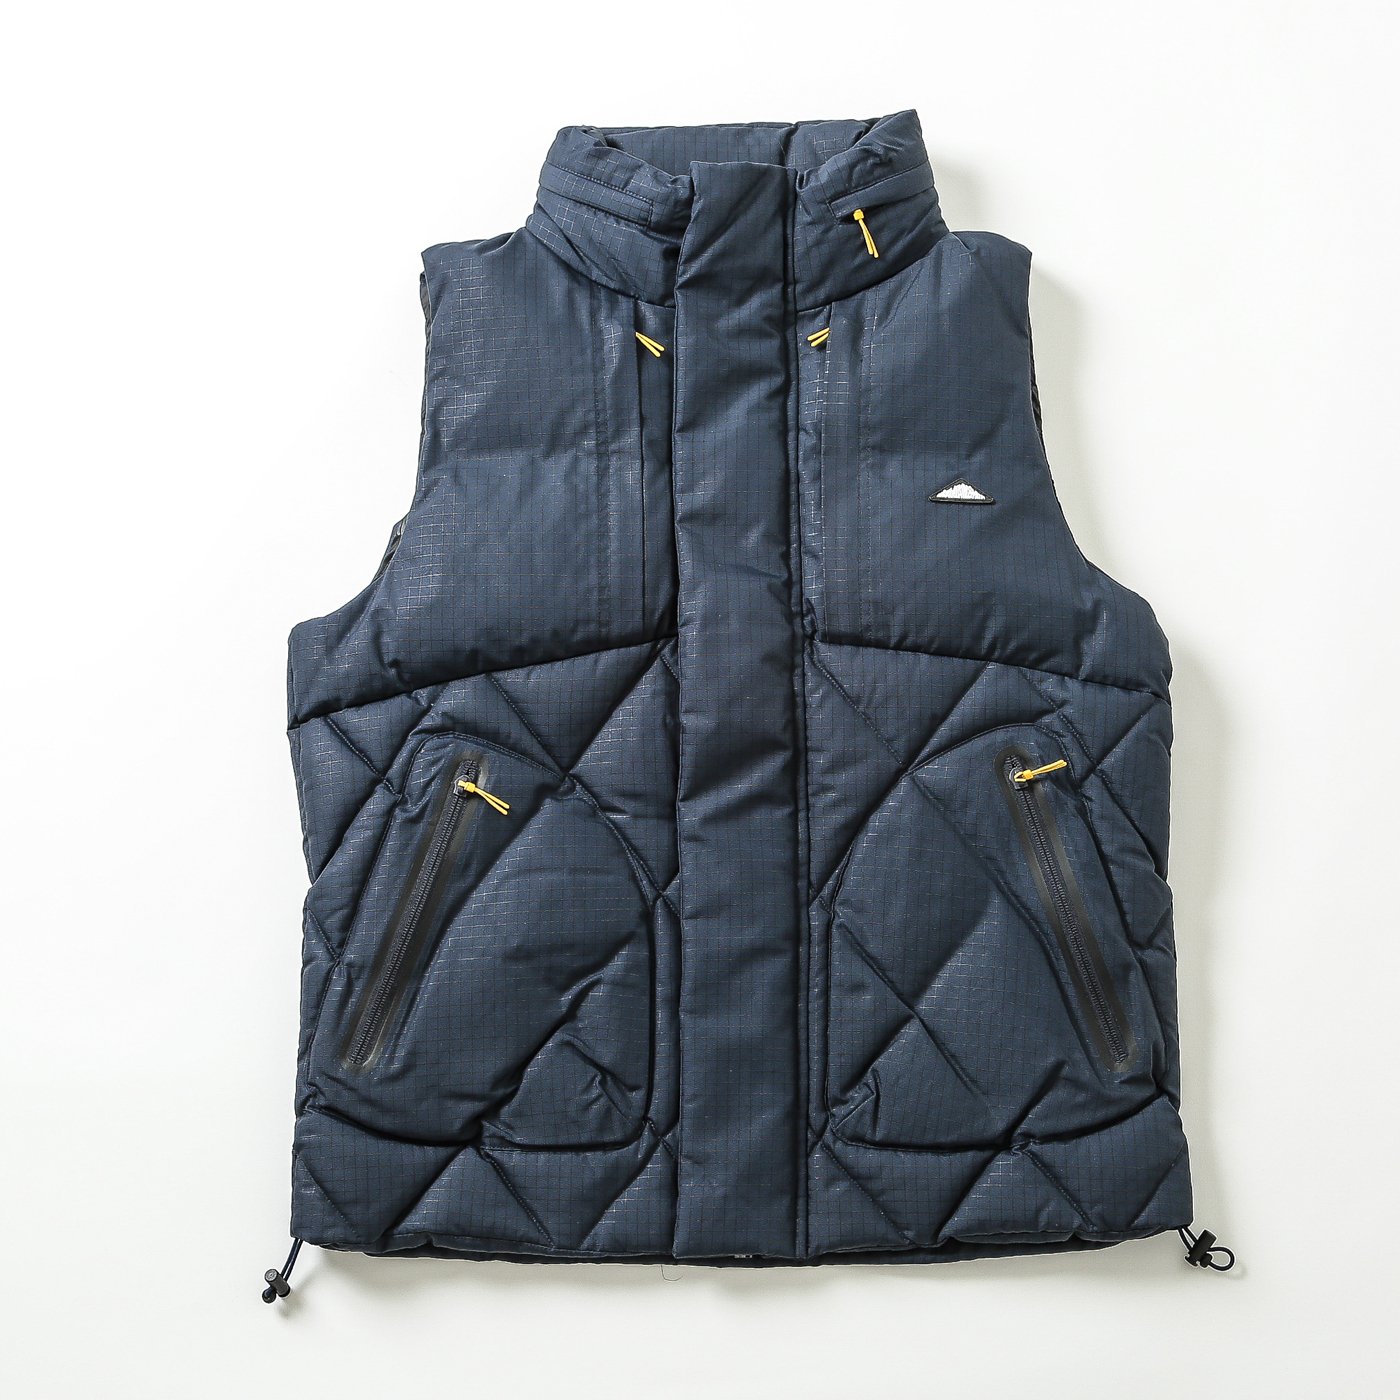 product: GlenHaven / color: NAVY 1